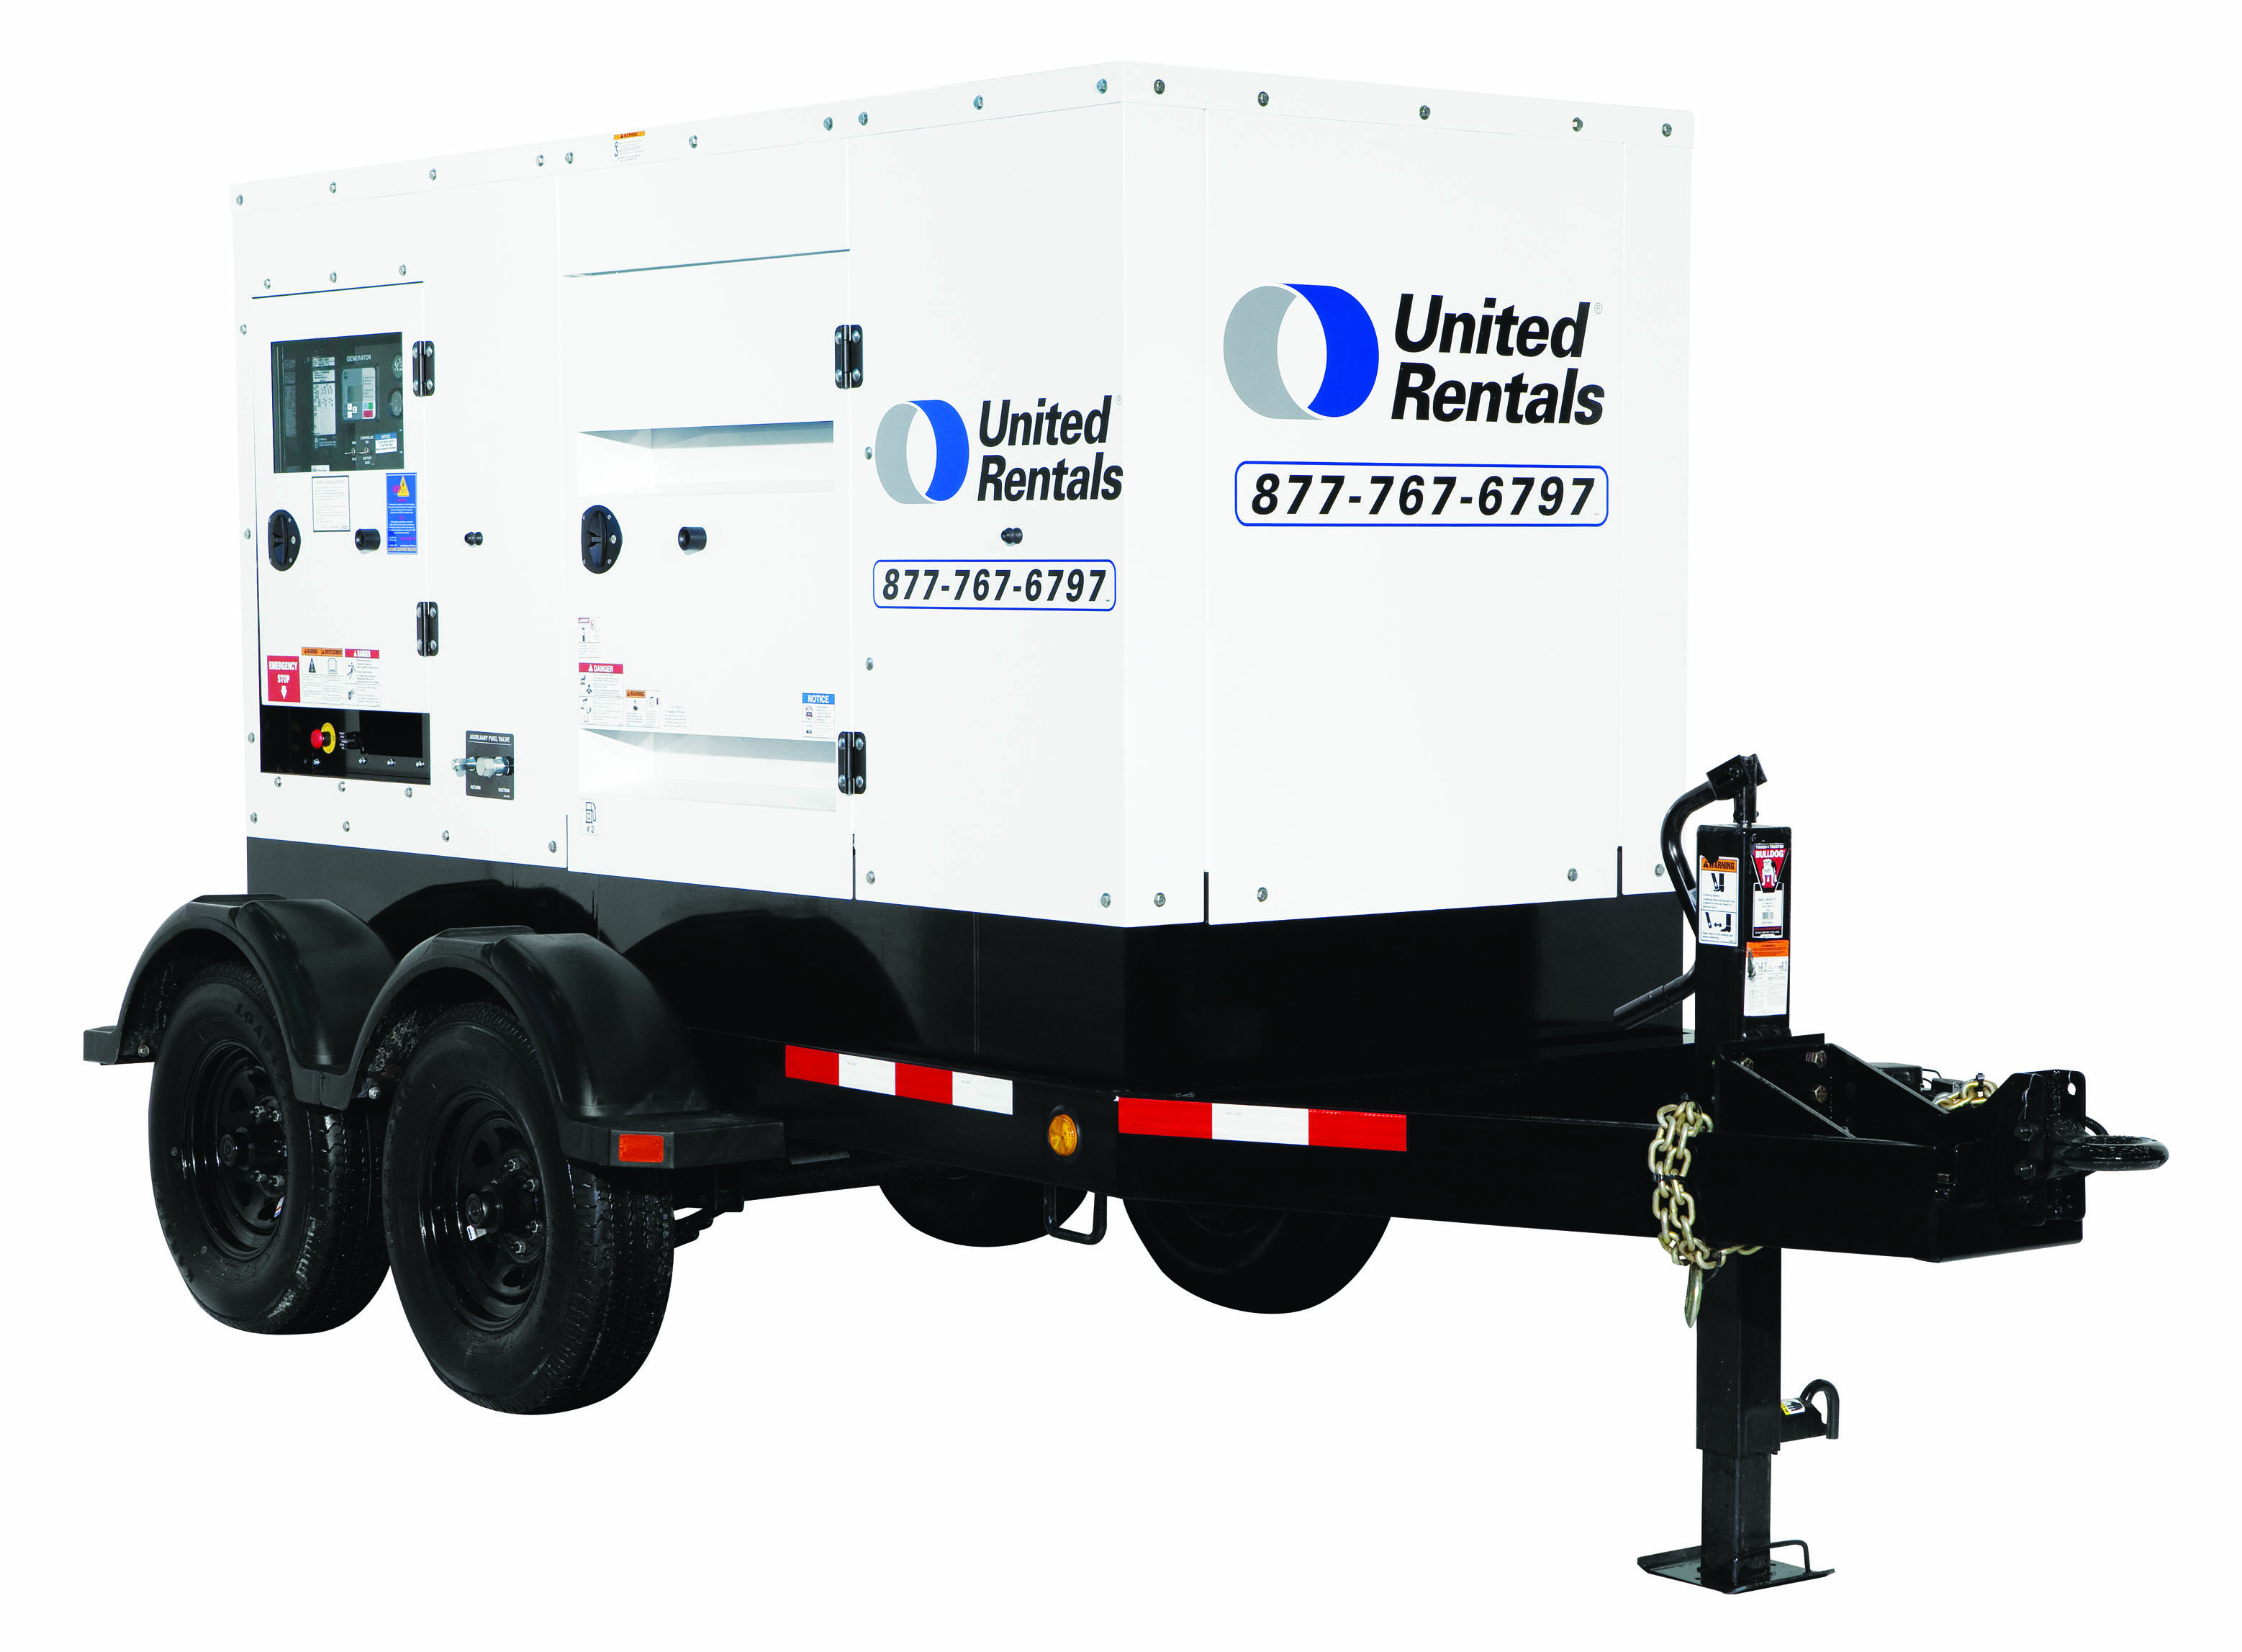 100 KW Generator for Rent United Rentals